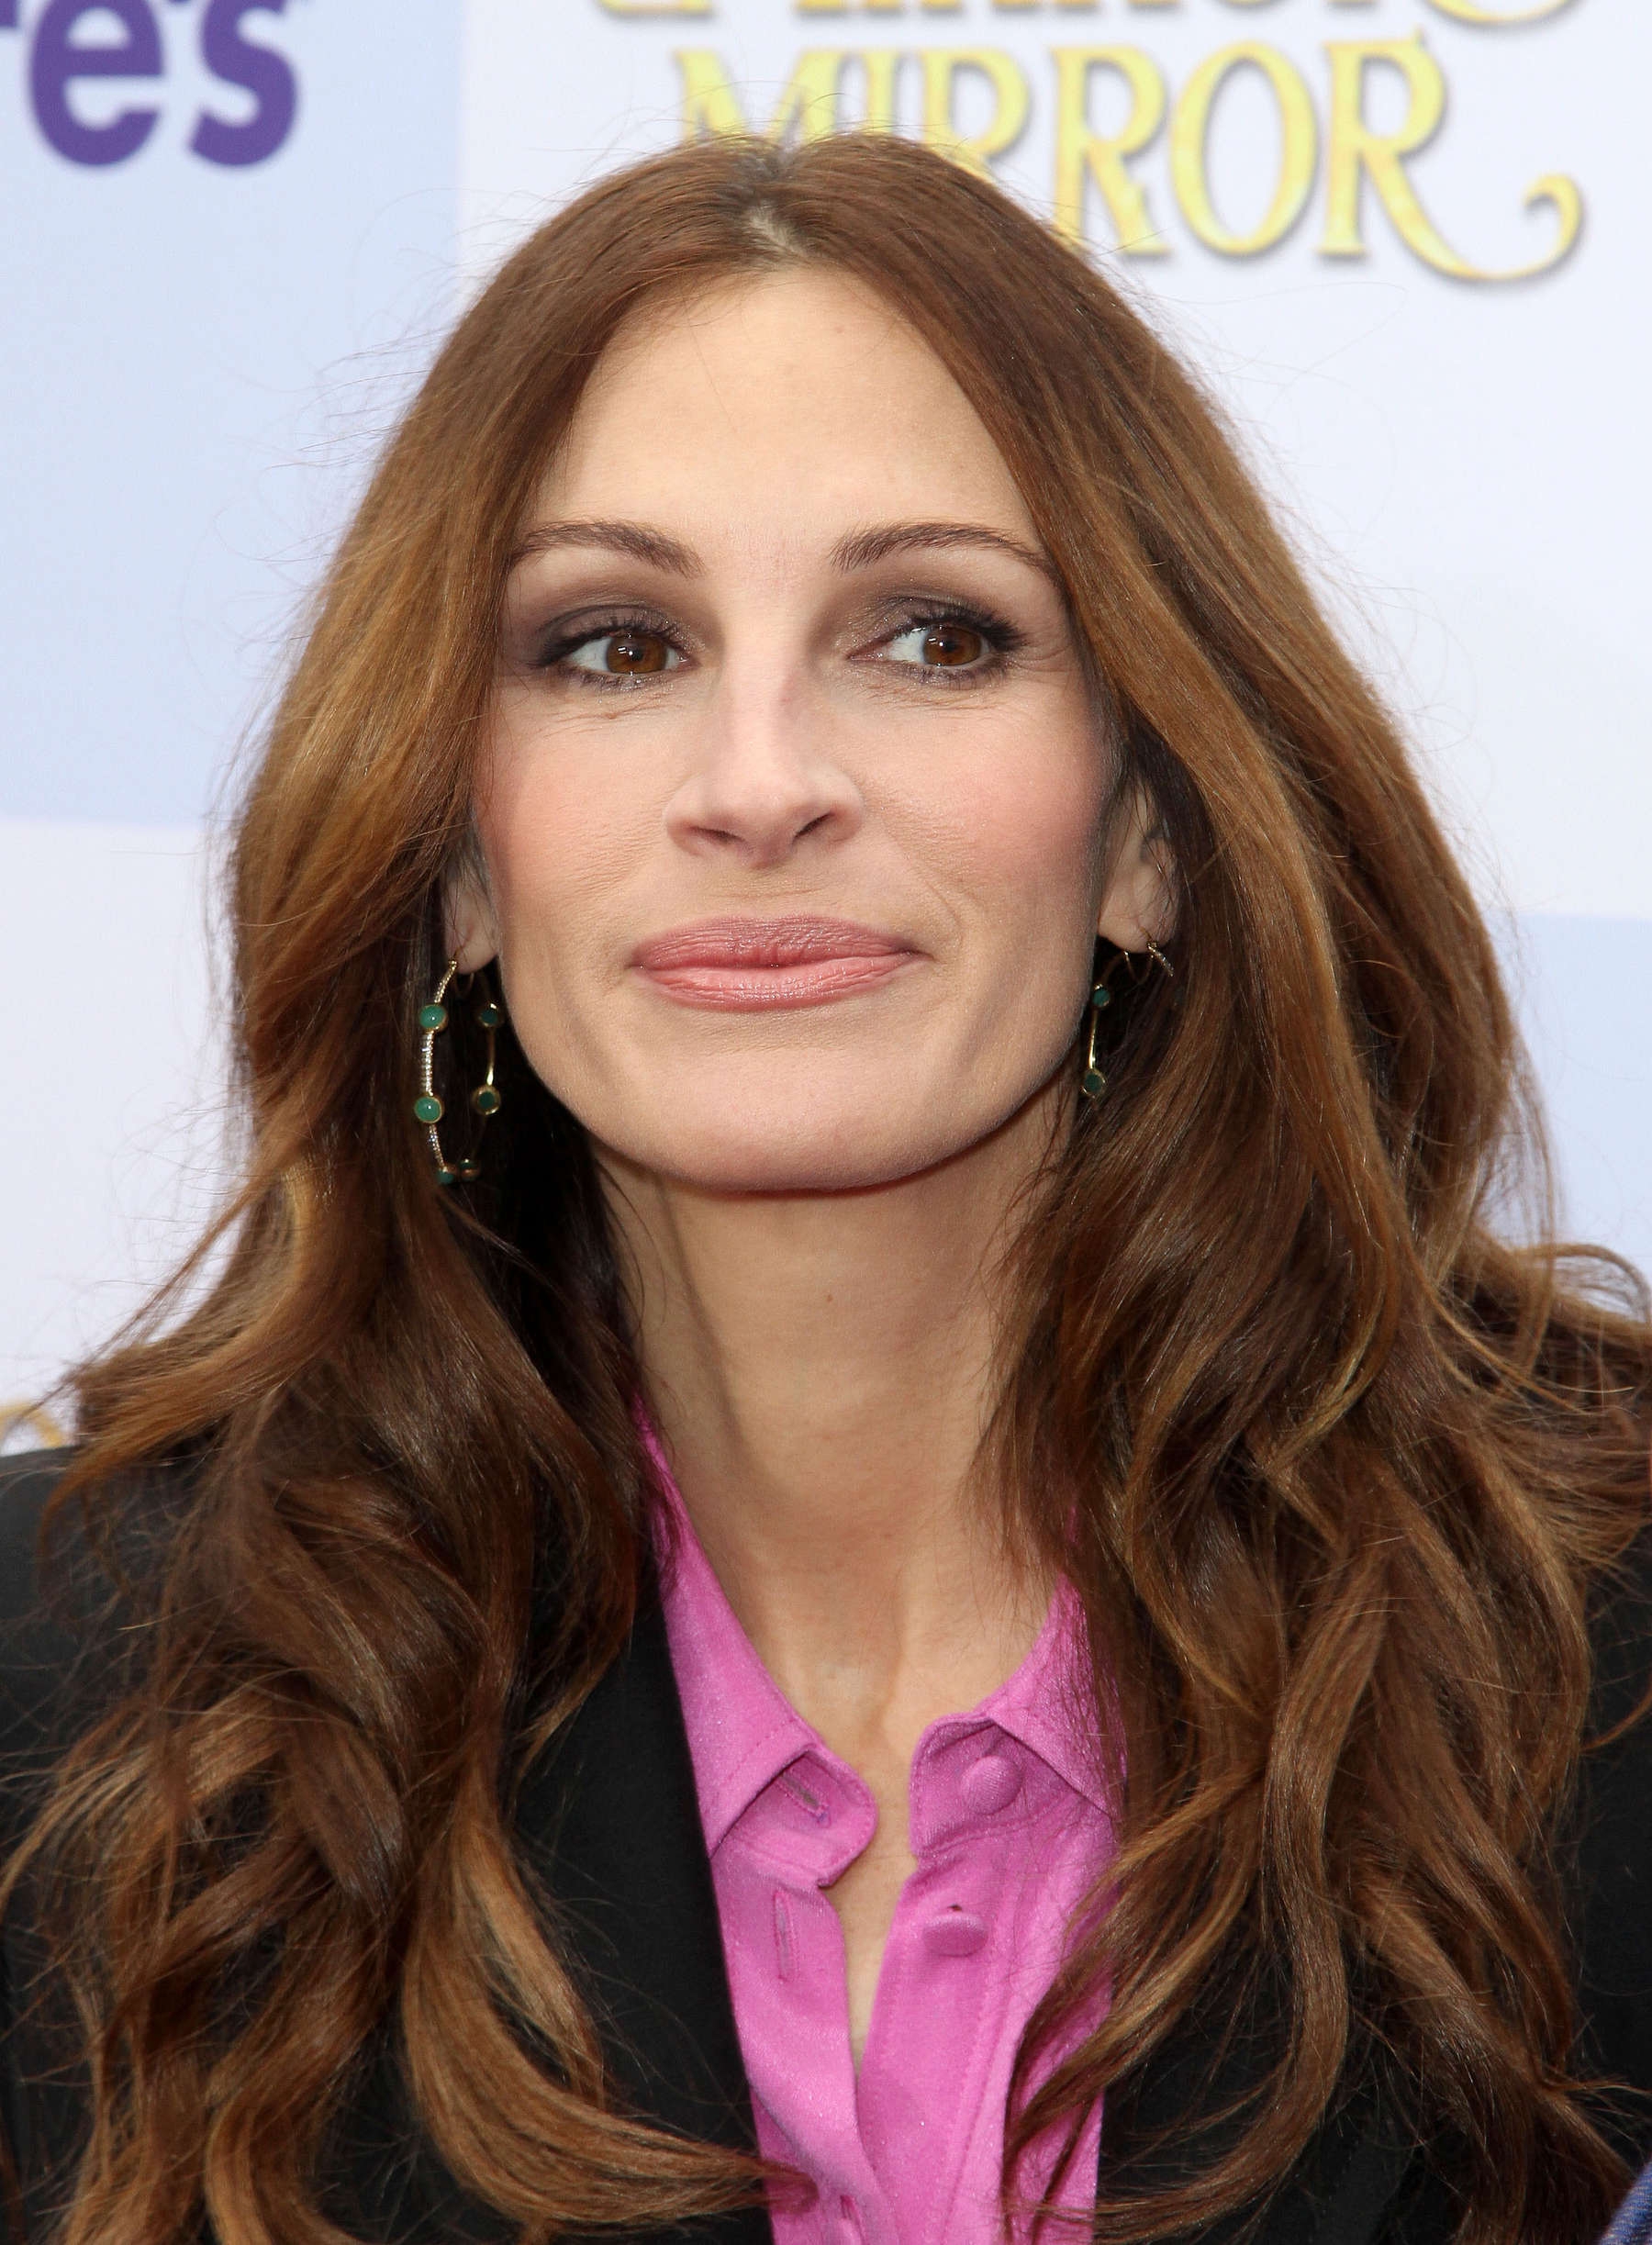 Julia Roberts at Mirror Mirror Premiere-15 - Full Size